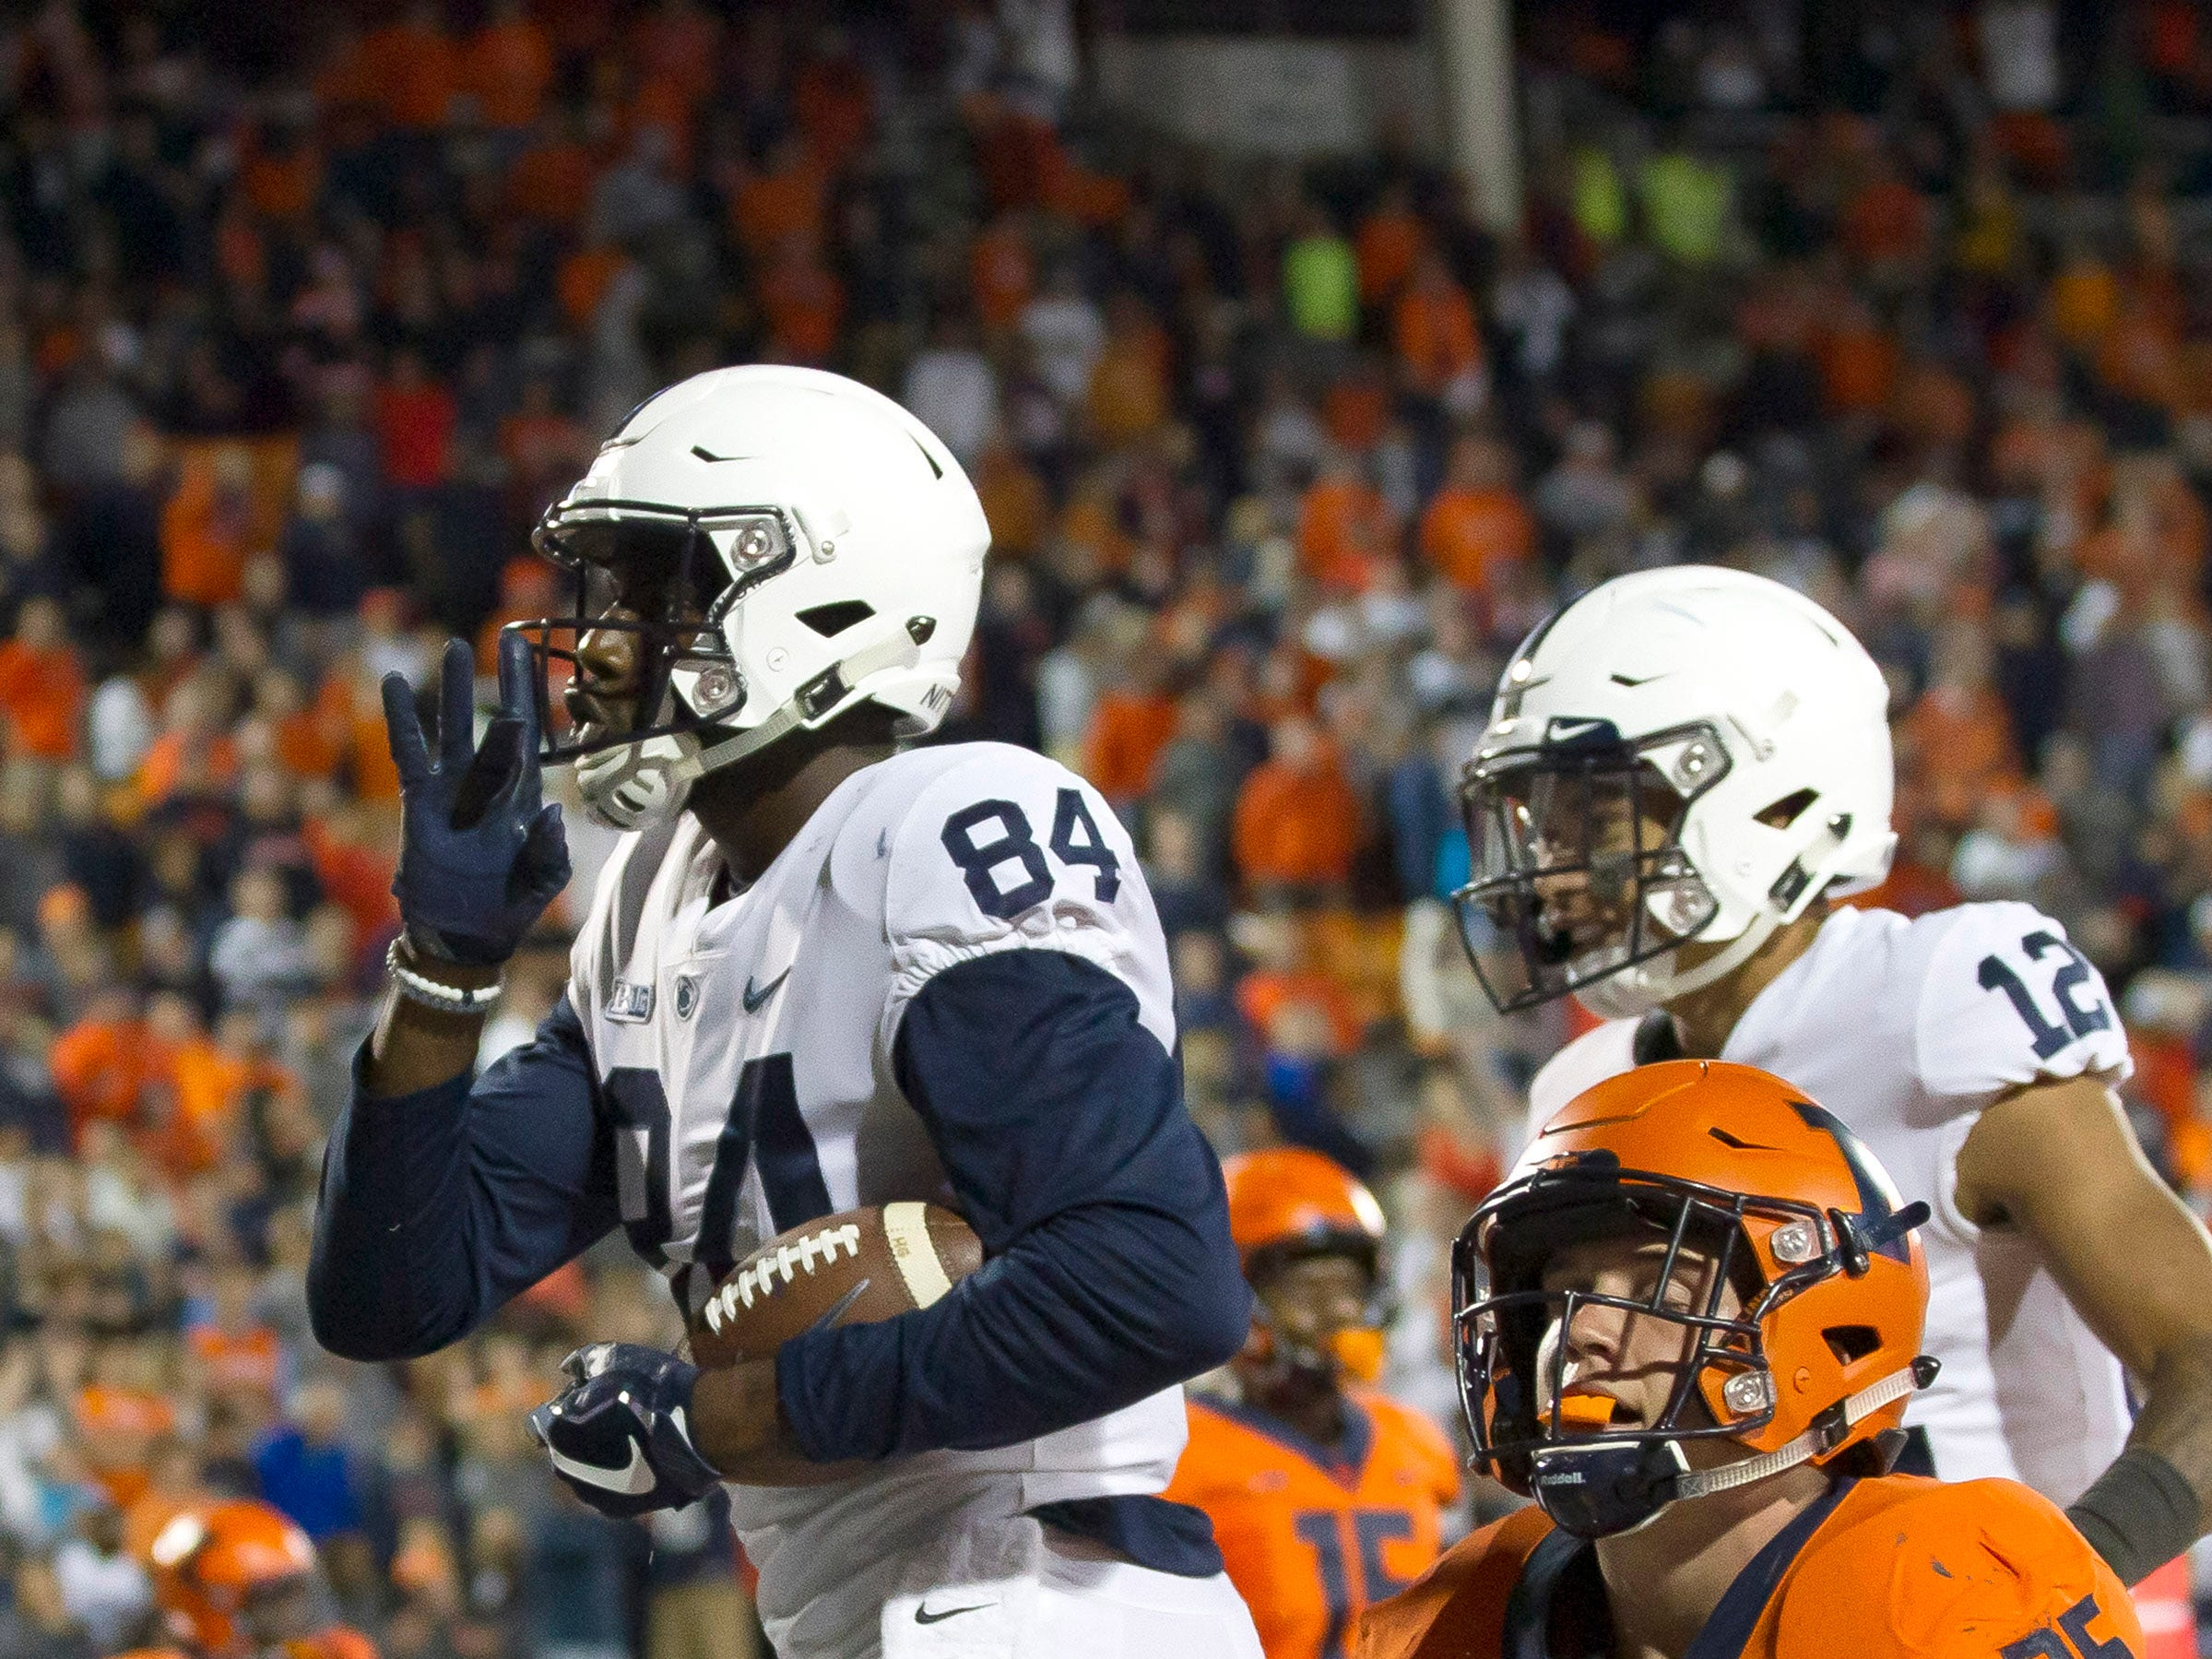 Penn State Nittany Lions wide receiver Juwan Johnson (84) celebrates after a touchdown against the Illinois Fighting Illini during the fourth quarter at Memorial Stadium.